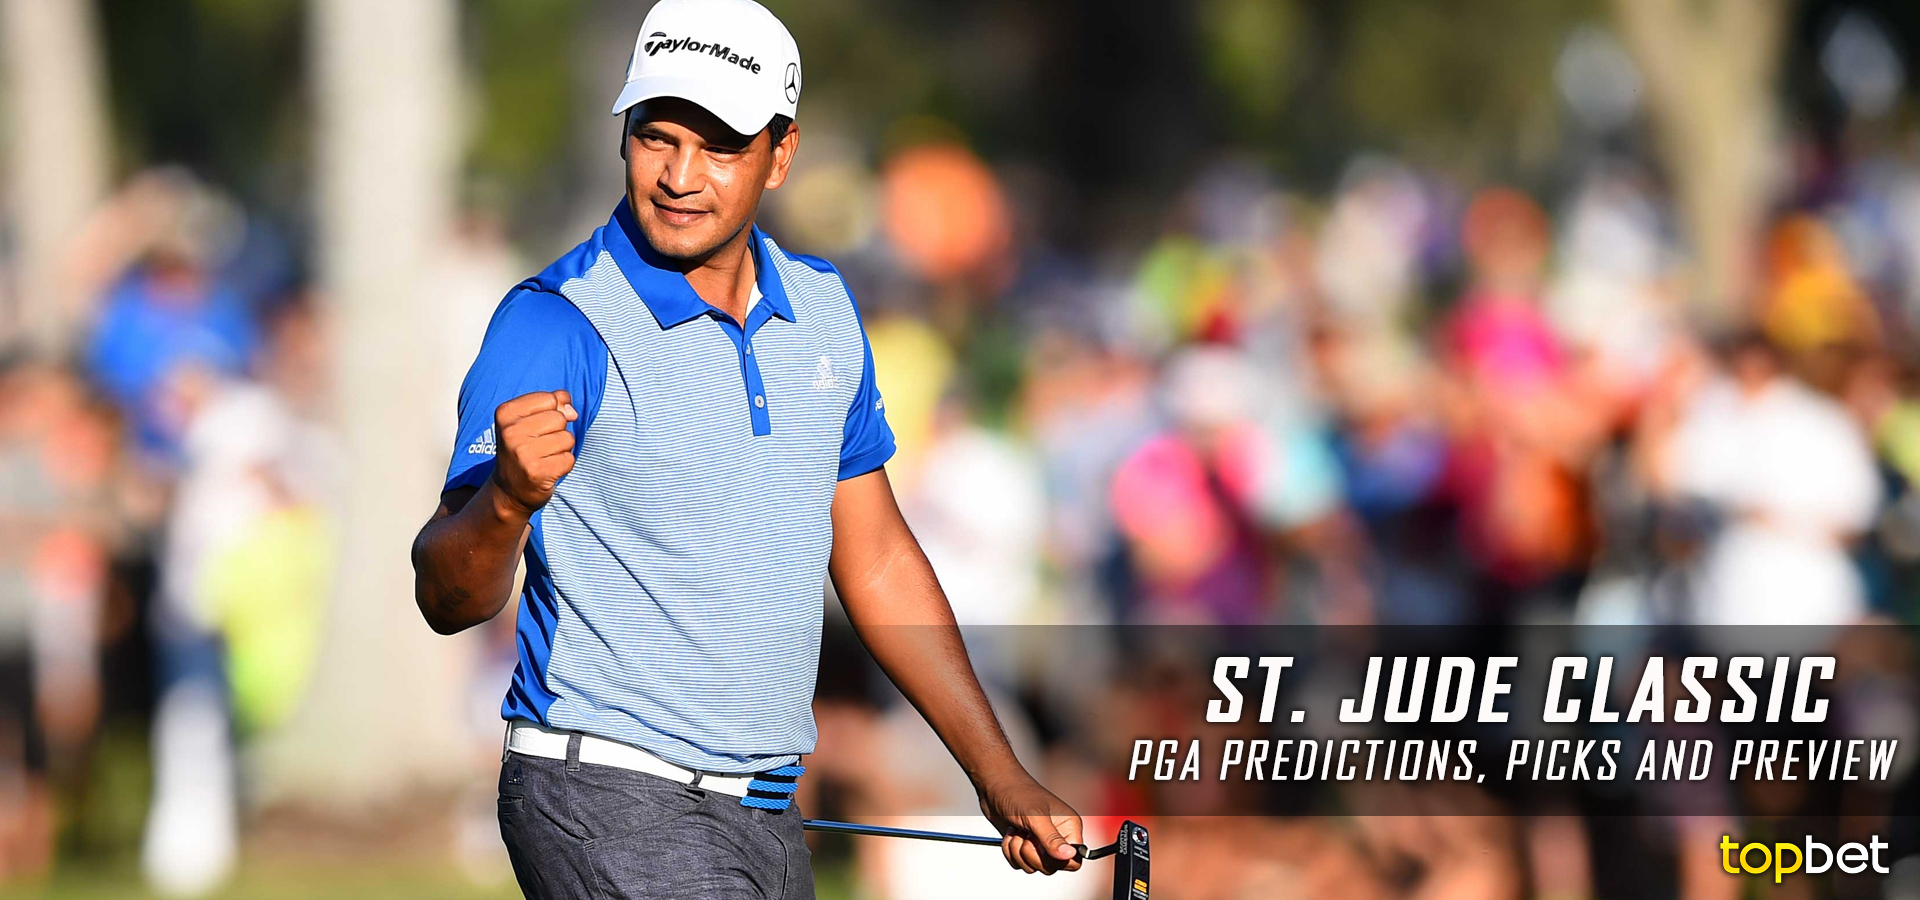 2016 Fedex St Jude Classic Predictions Picks And Preview